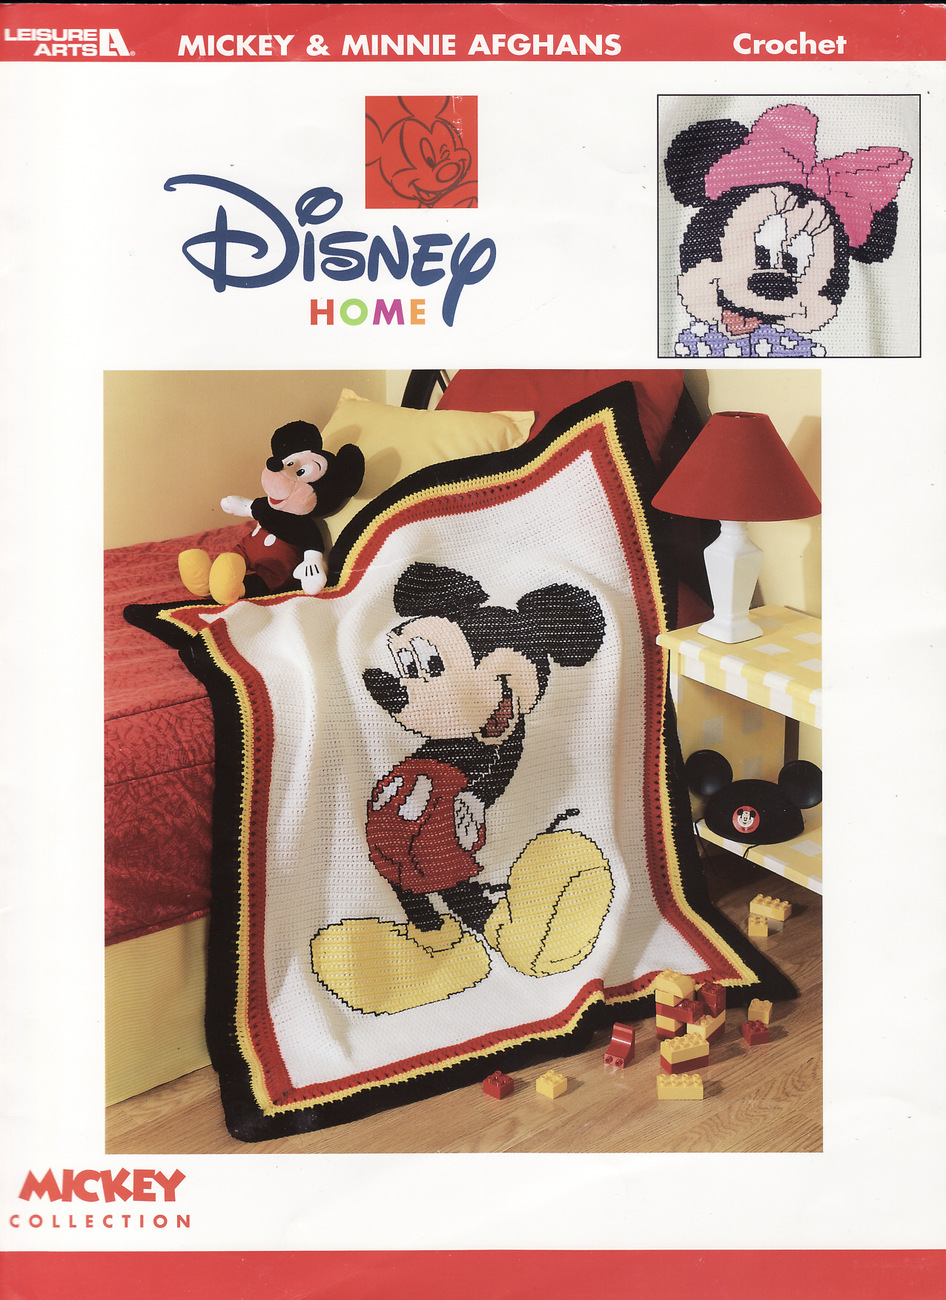 Disney Mickey & Minnie Afghans Crochet Patterns Book Mouse Designs Blankets